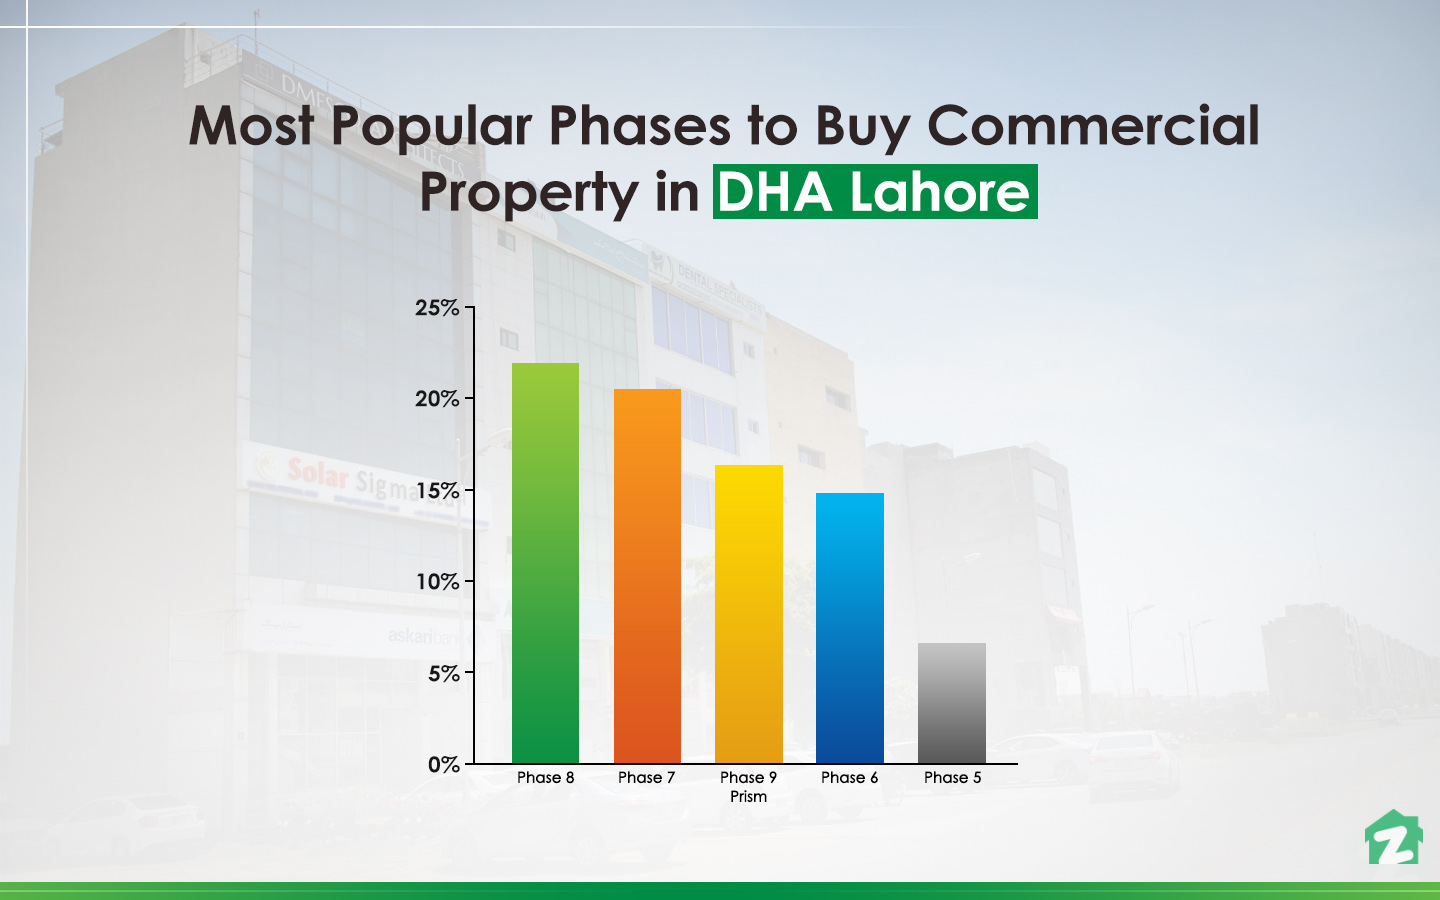 Popular phases in DHA, Lahore for buying commercial properties